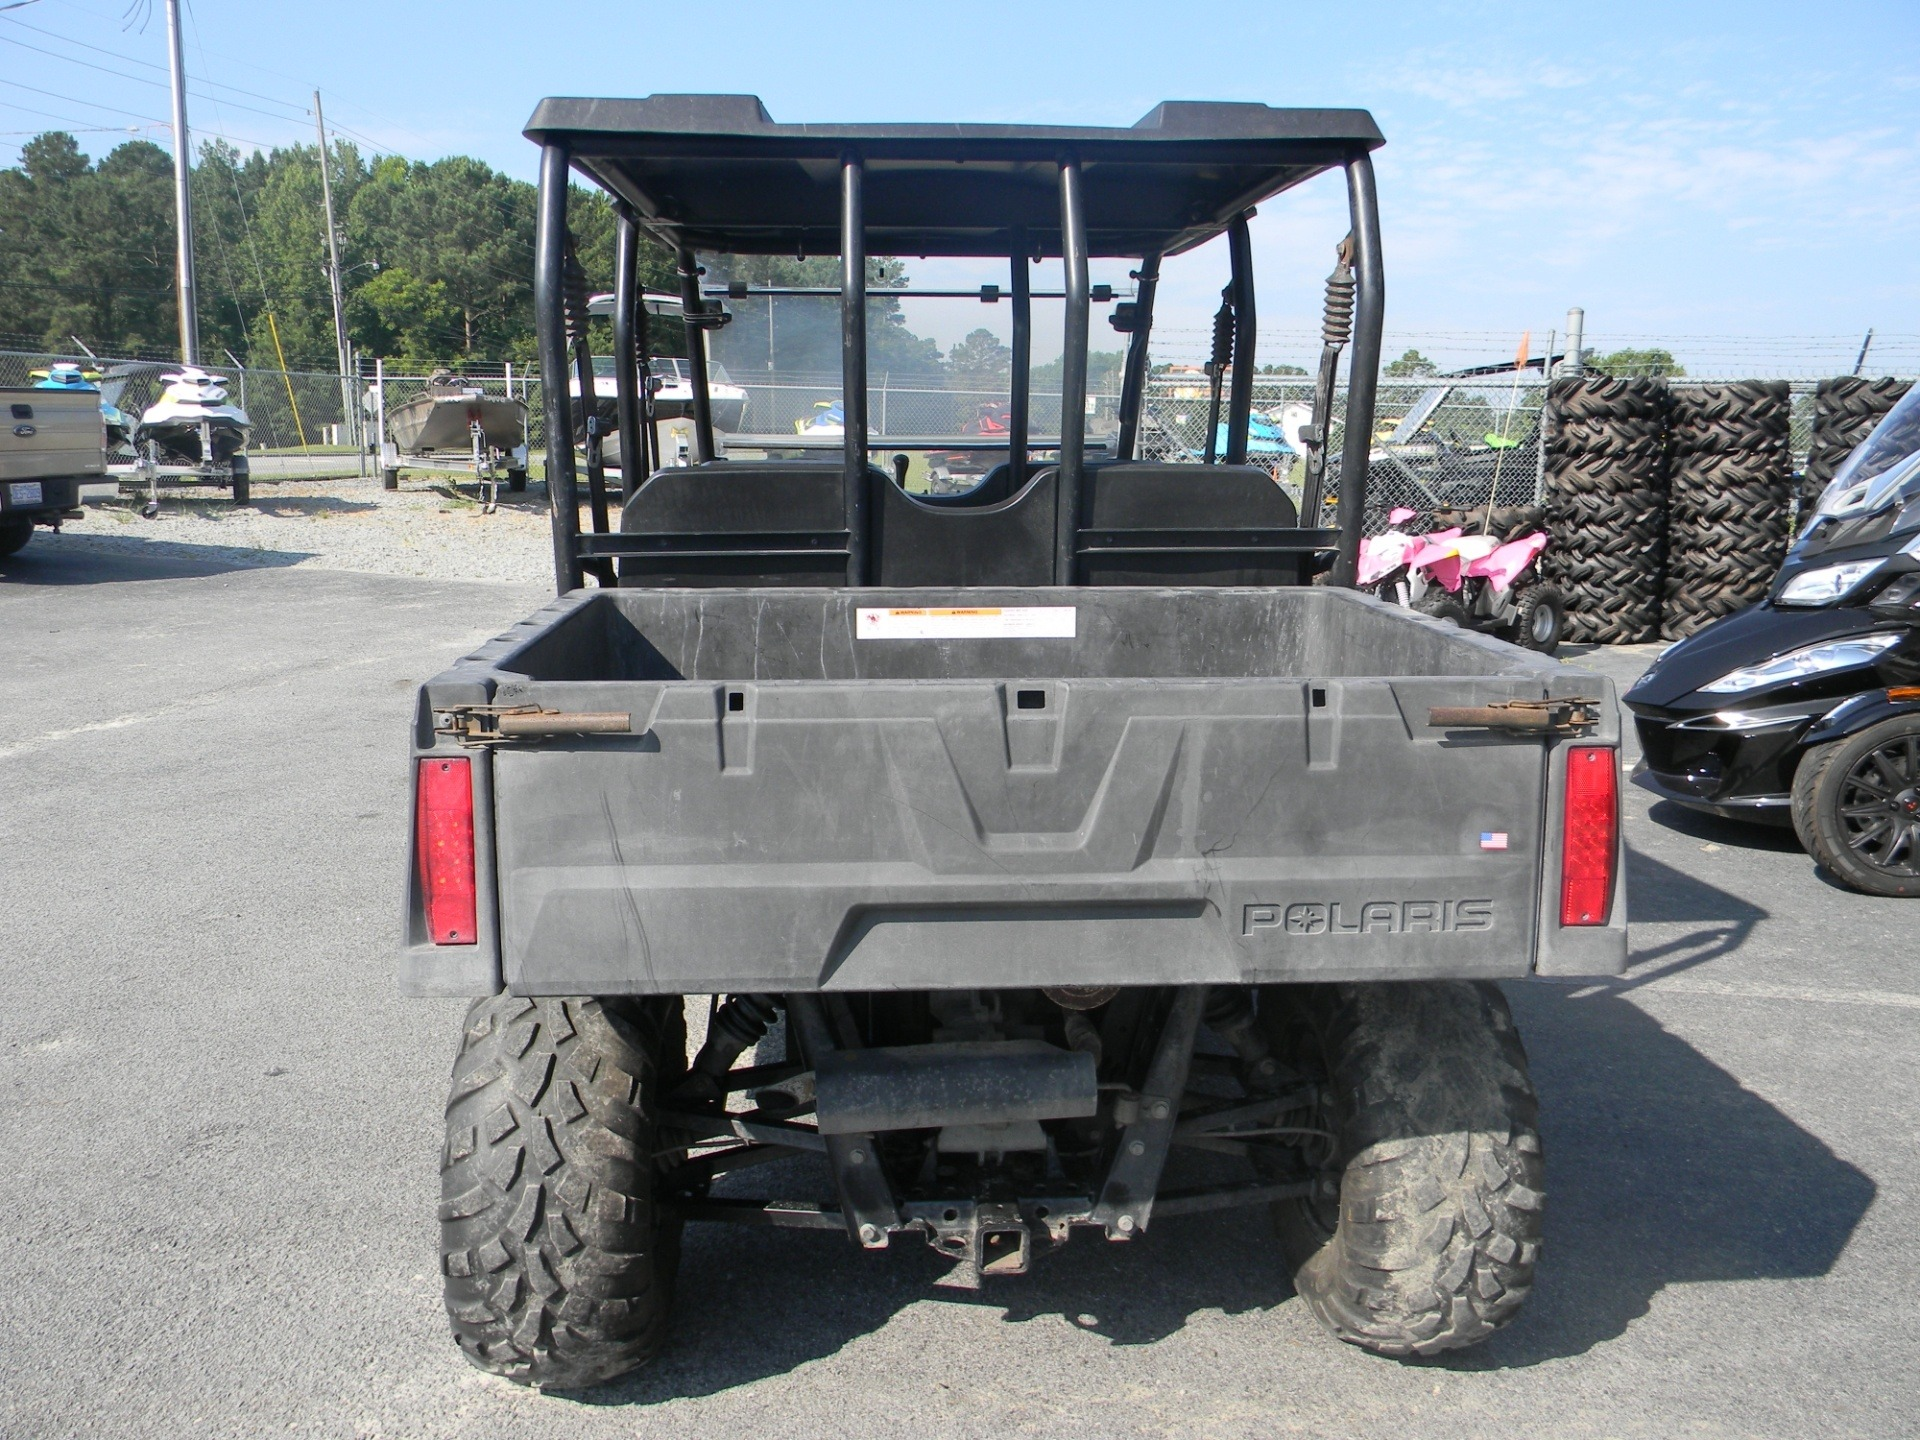 Scooters For Sale Greenville Nc >> 2011 Polaris Ranger Crew 500 For Sale Greenville, NC : 29083